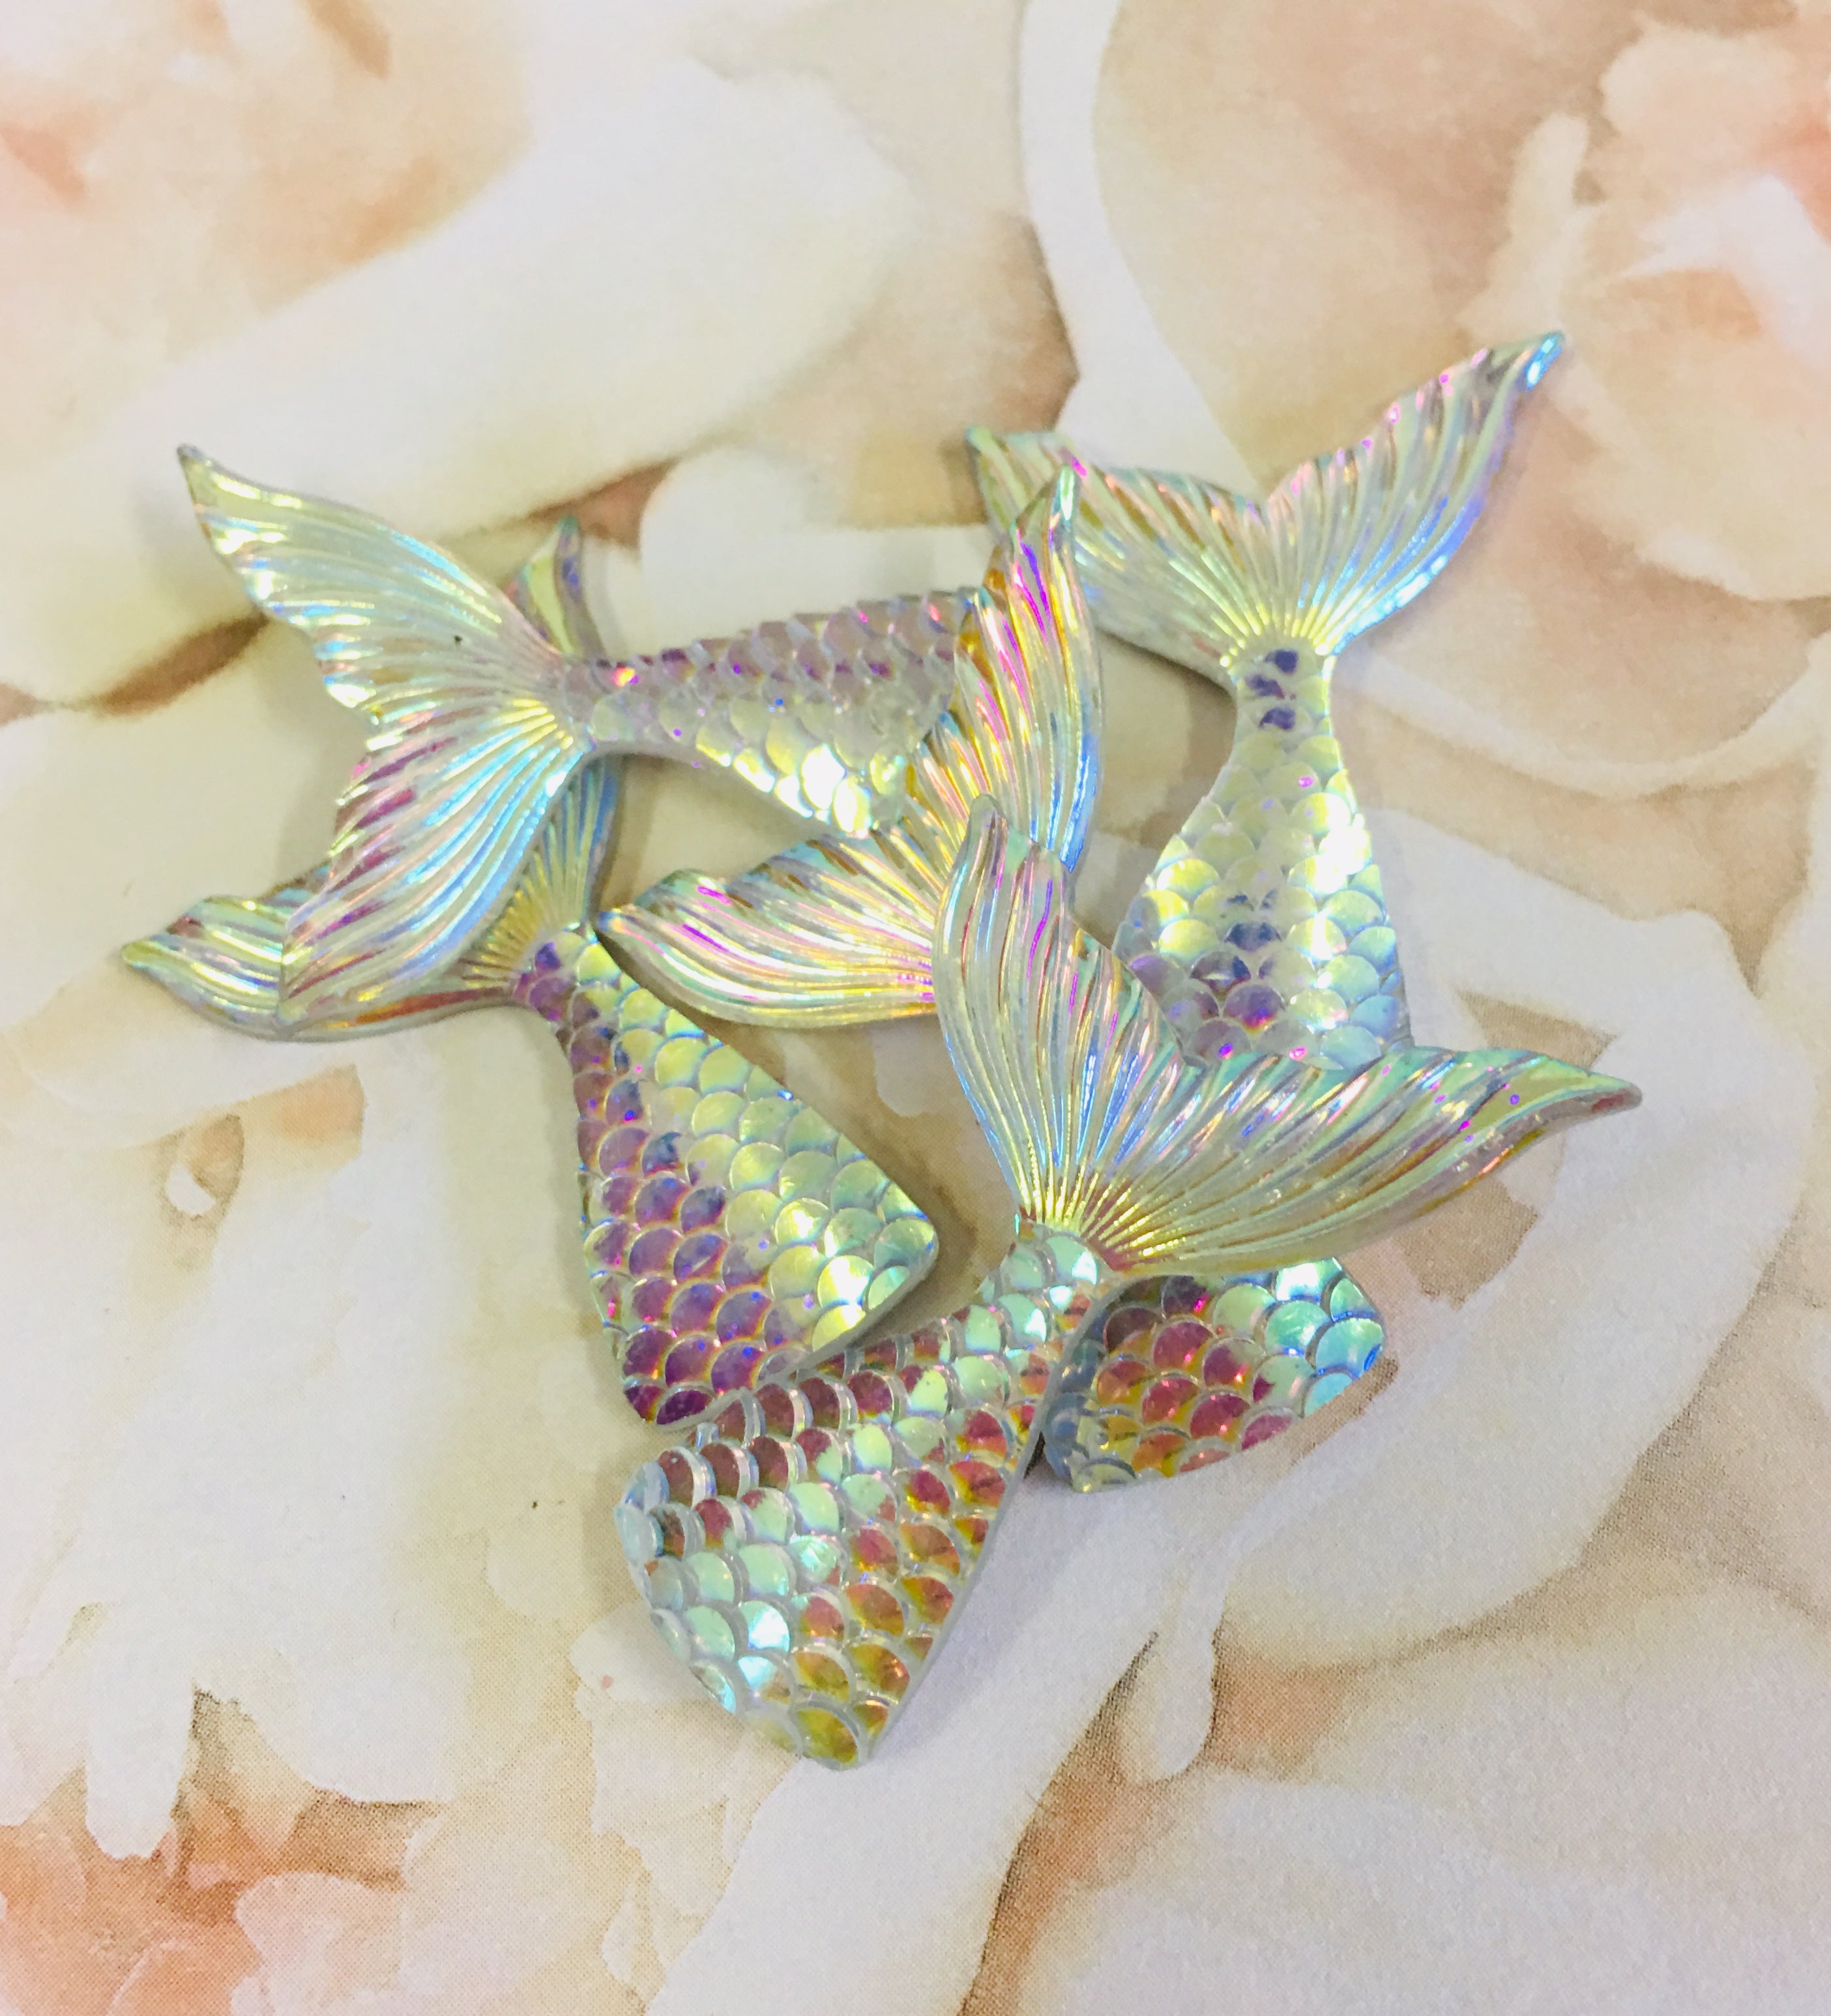 Mermaid Tail - Metallic Pale Pink/White - shabbyflowers.com